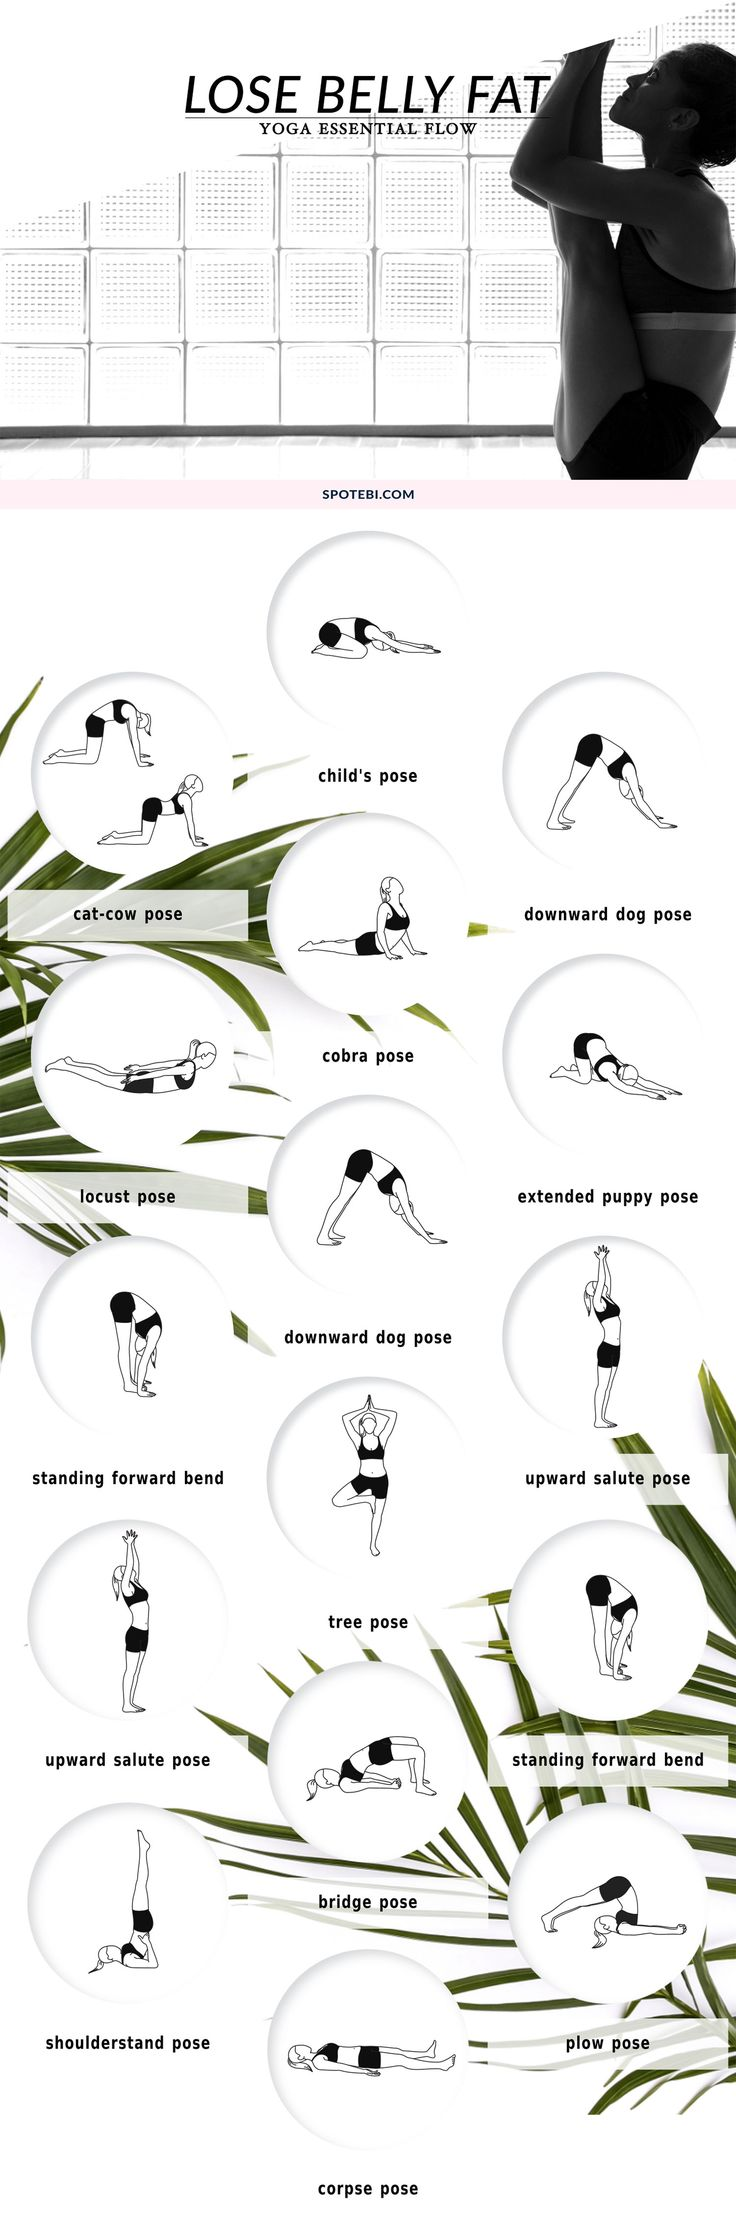 Lose Belly Fat and reduce cortisol levels with this 15-minute Yoga Flow for Beginners! https://www.spotebi.com/yoga-sequences/lose-belly-fat-flow/ via @spotebi